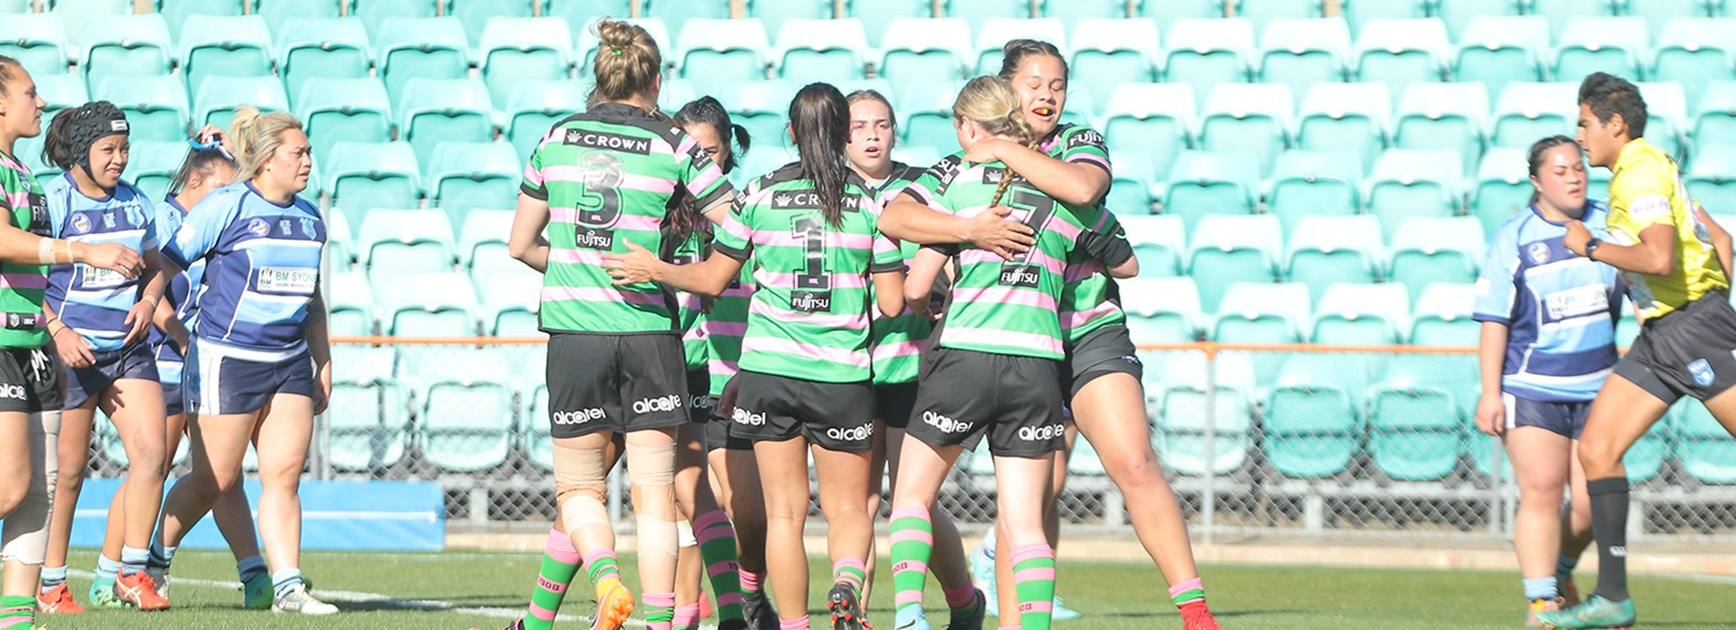 South Sydney to face Mounties in NSW Women's Grand Final